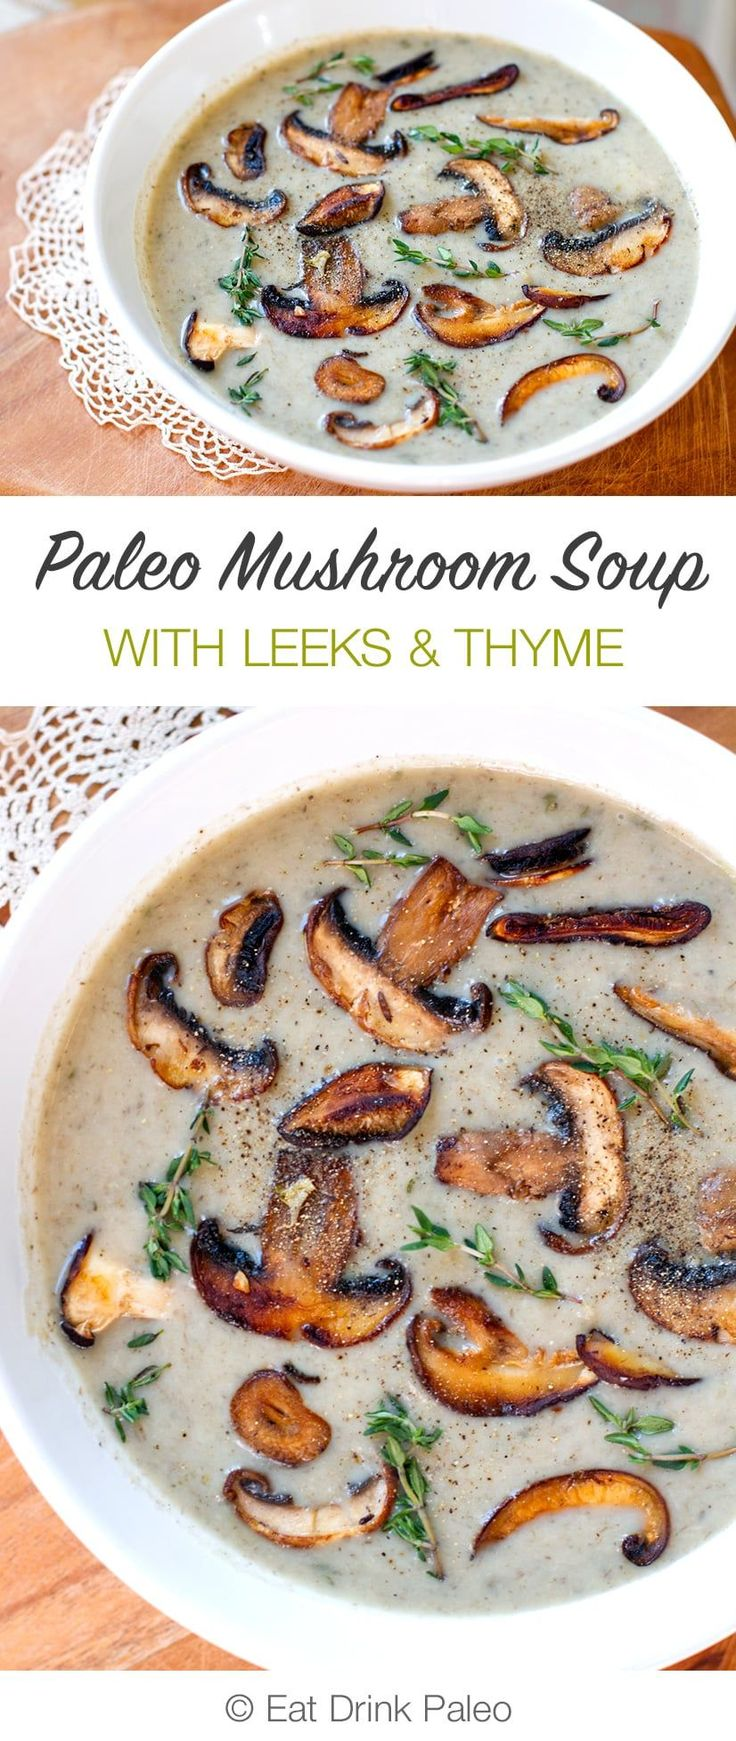 Mushroom, Leek and Thyme Soup | http://eatdrinkpaleo.com.au/mushroom-leek-thyme-paleo-soup/